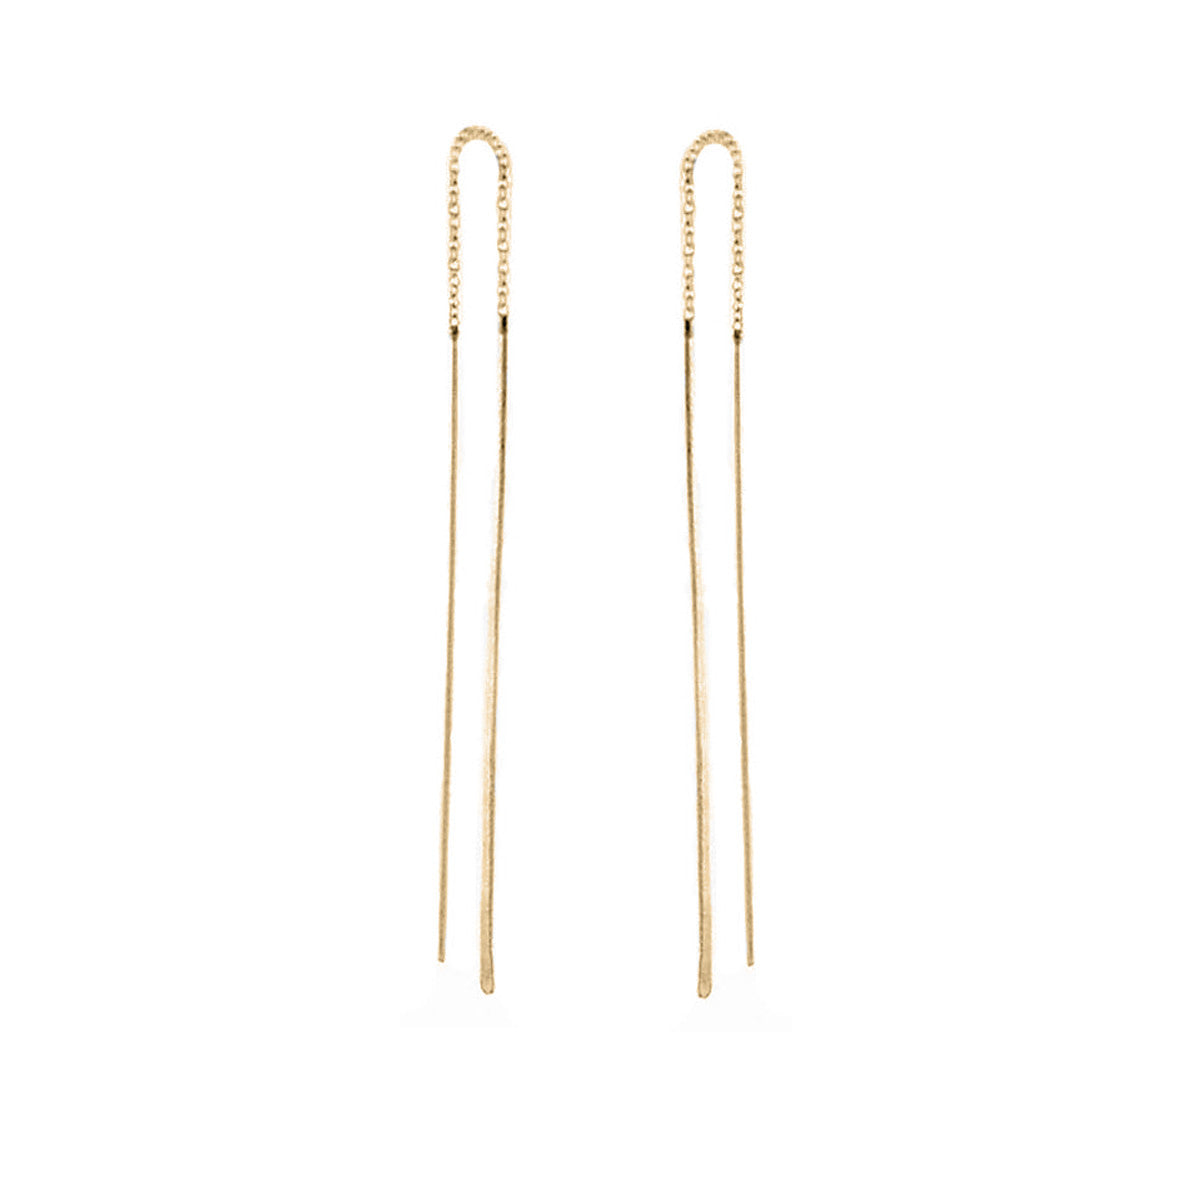 14k hammered wire threader earrings